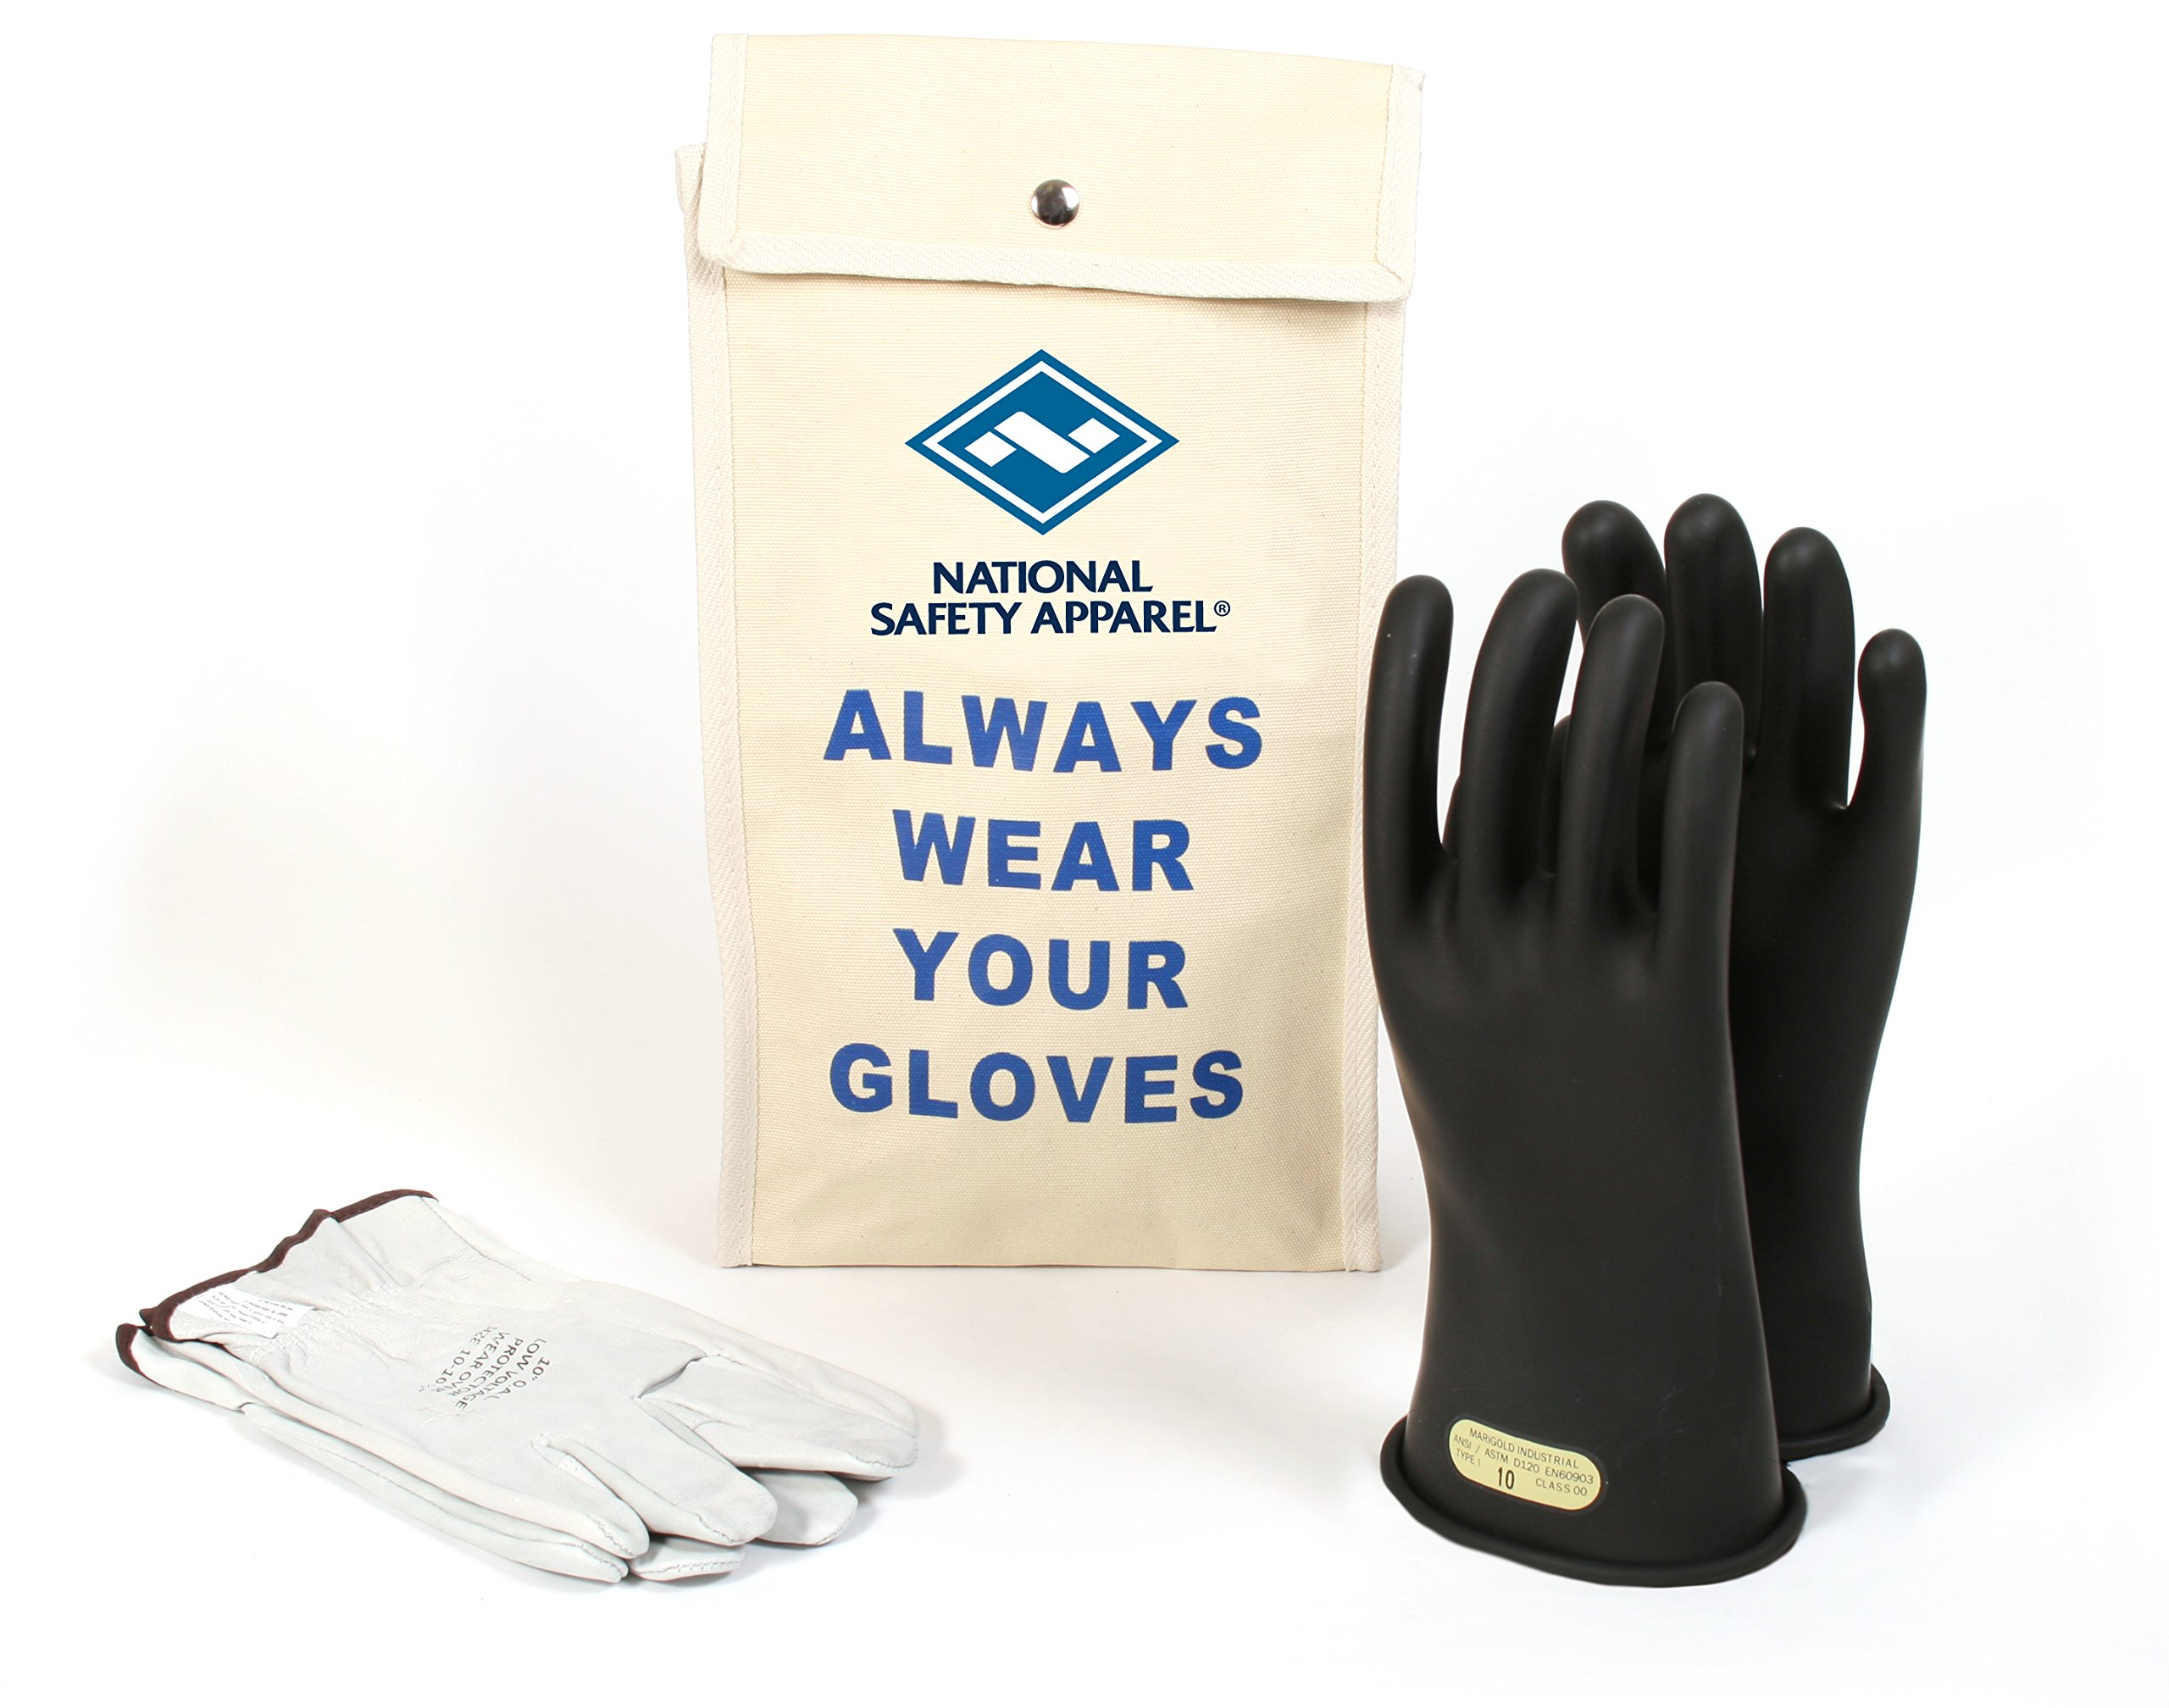 National Safety Apparel Class 00 Black Rubber Voltage Insulating Glove Kit with Leather Protectors, Max. Use Voltage 500V AC/ 750V DC (KITGC0012)